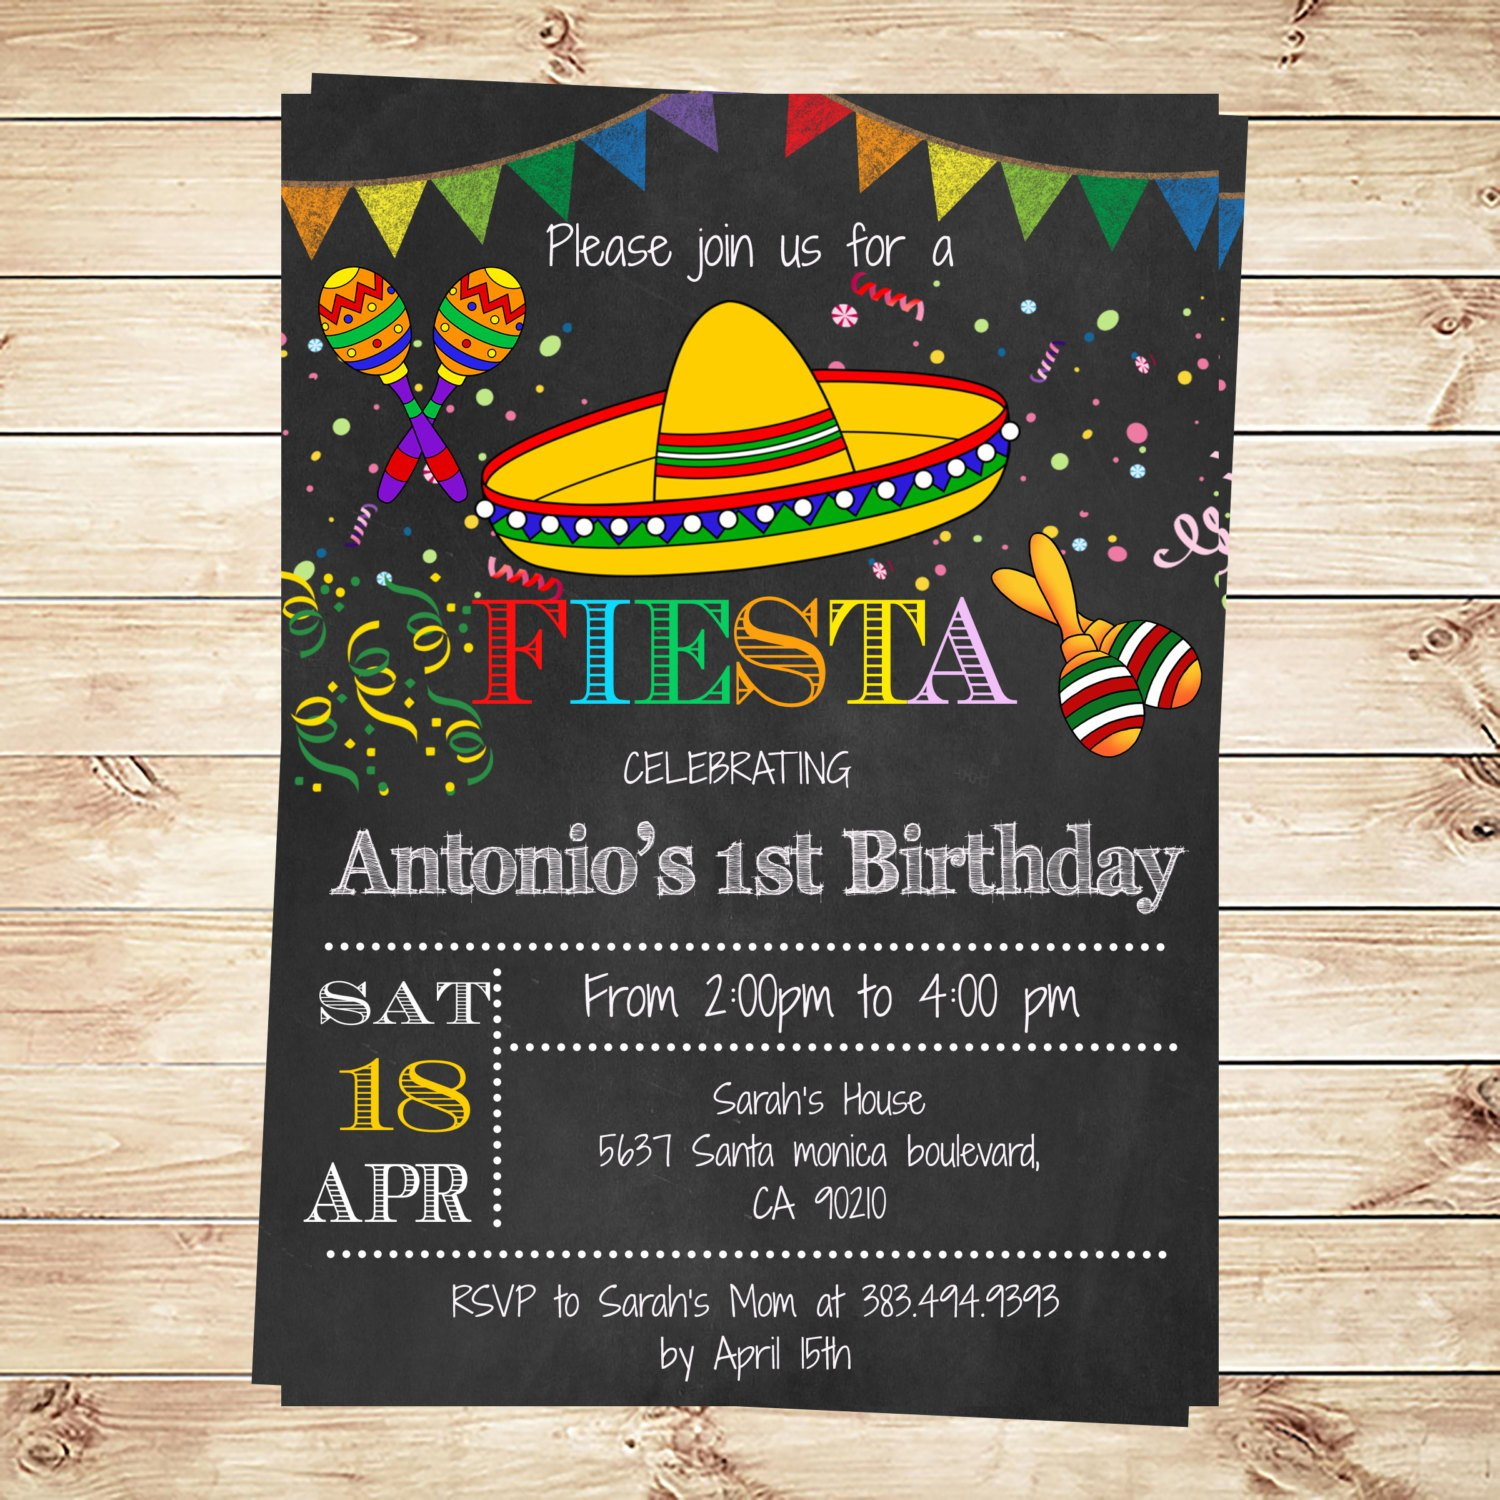 Fiesta Invitations Templates Free Birthday Mexican Fiesta Party Invitations Printable